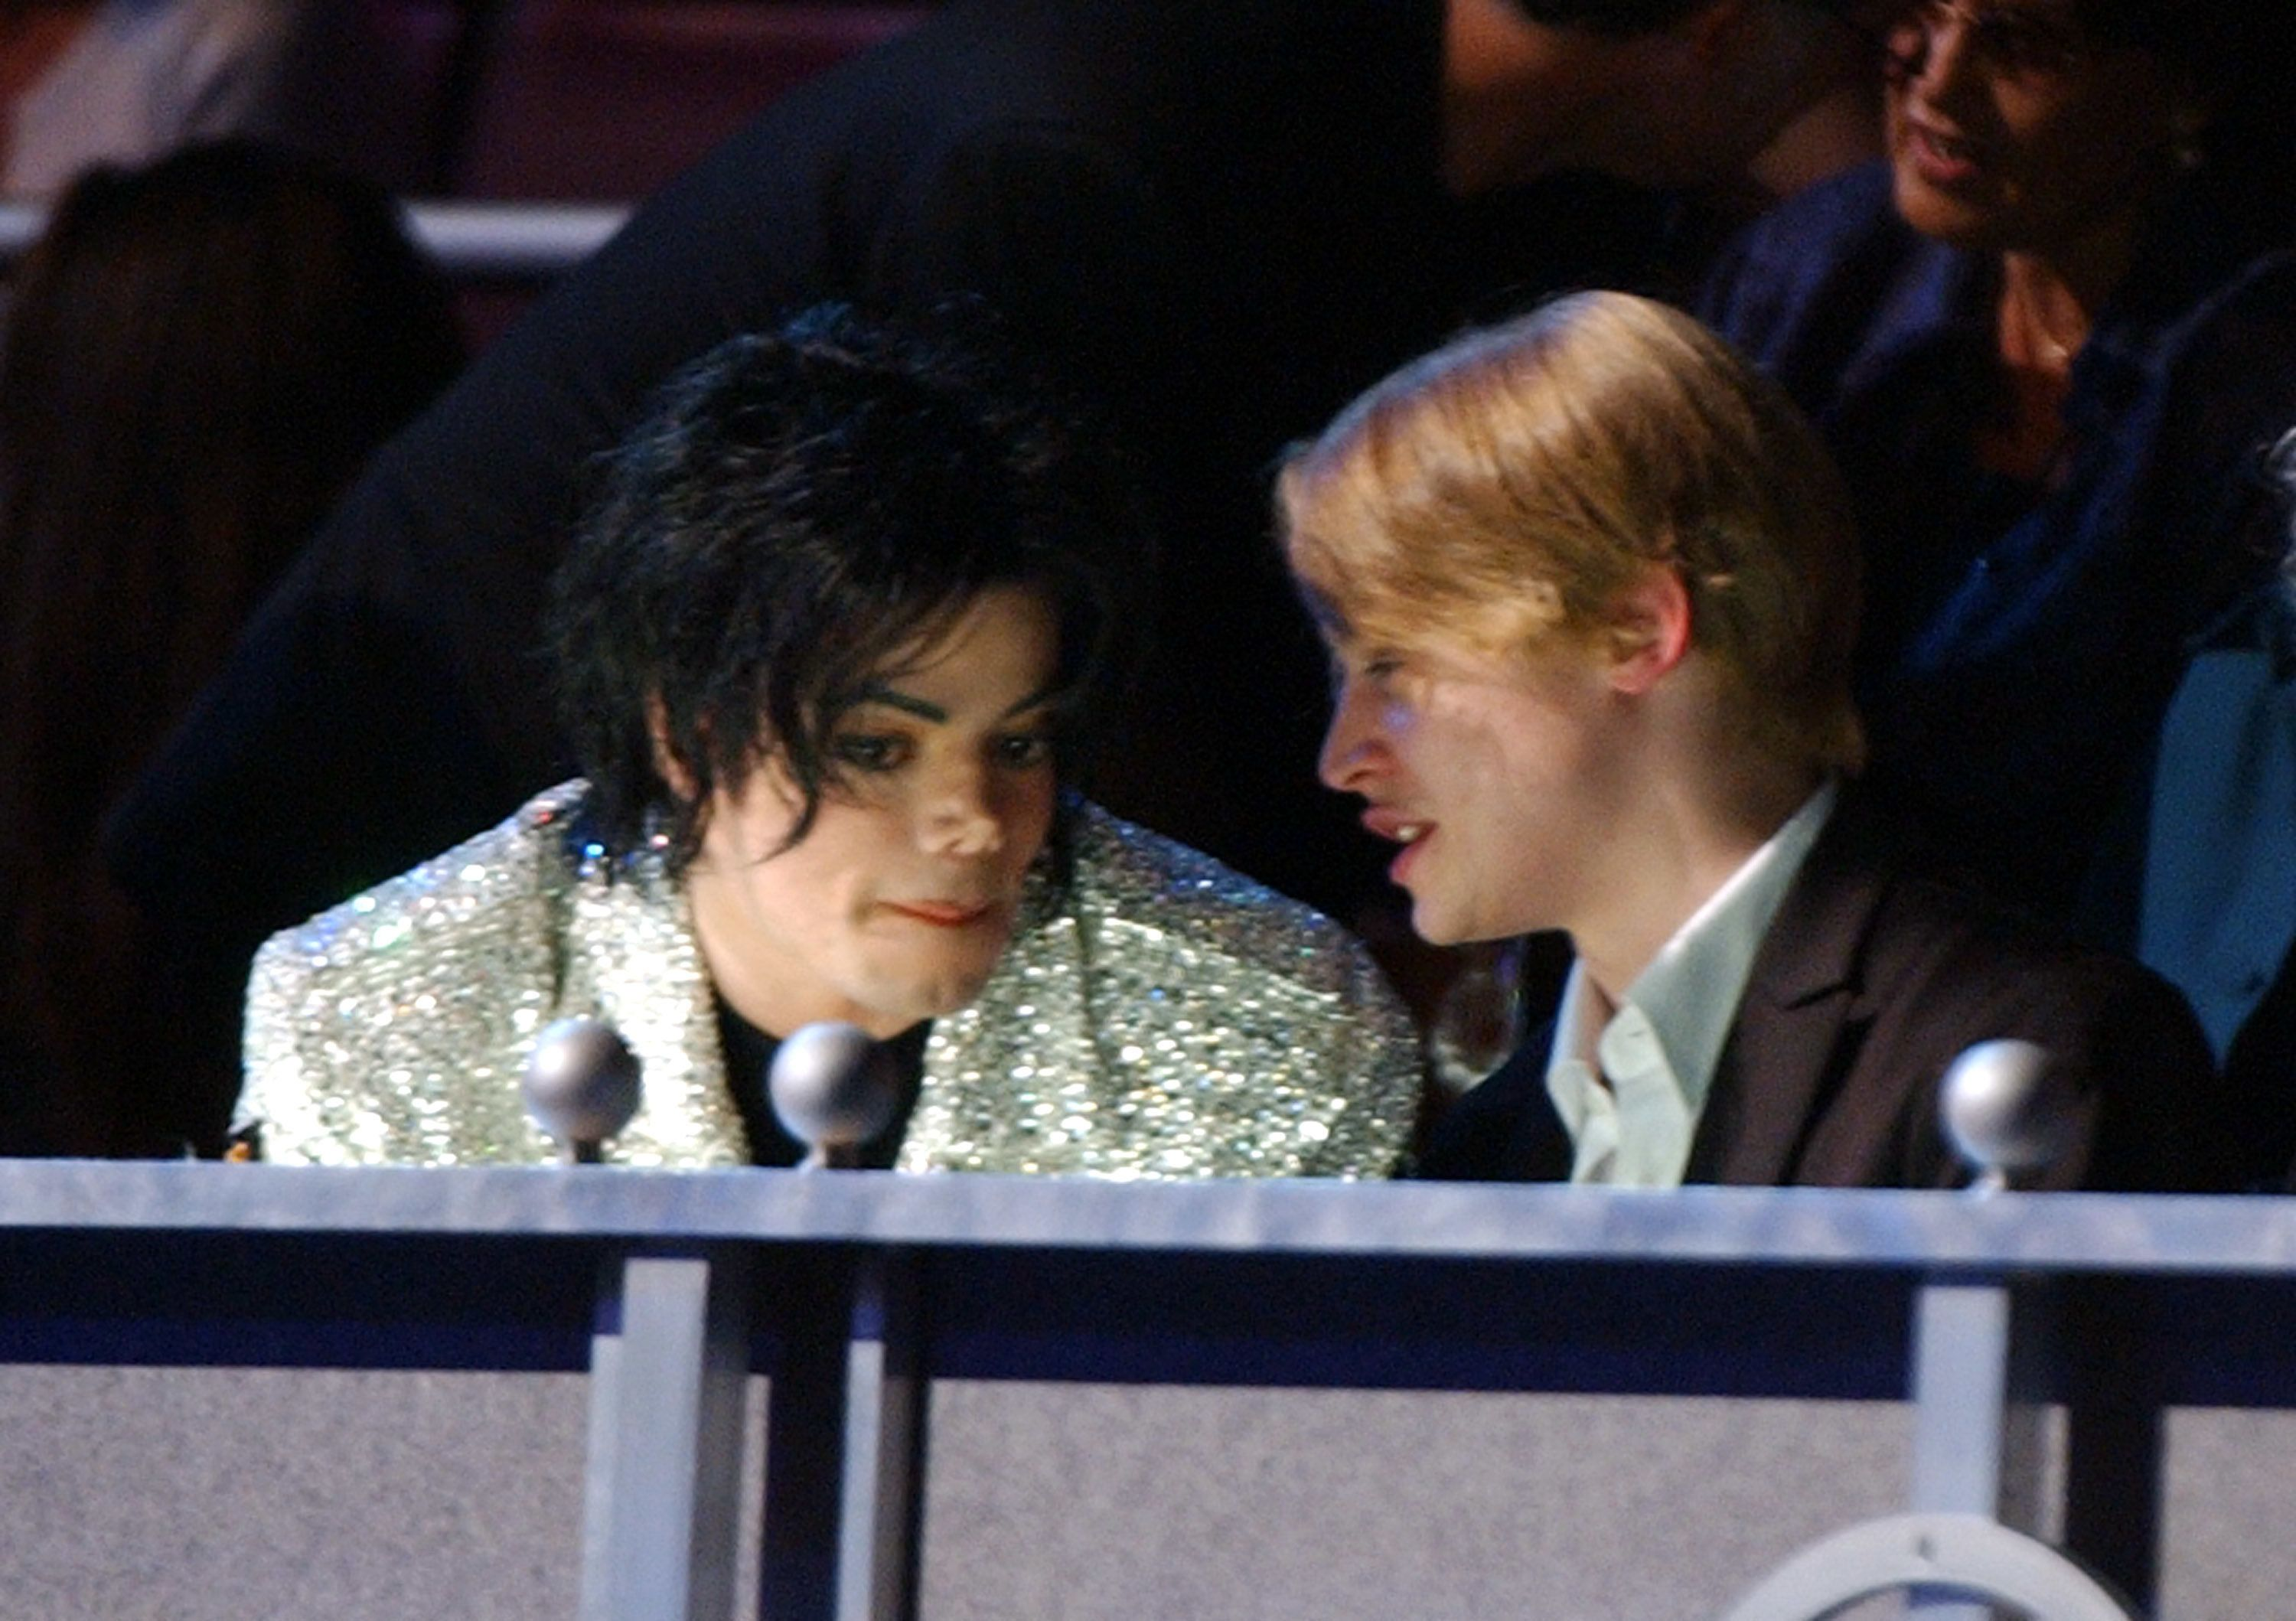 Michael Jackson and Macaulay Culkin at a star-studded concert celebration for Jackson, held at Madison Square Garden in 2001.